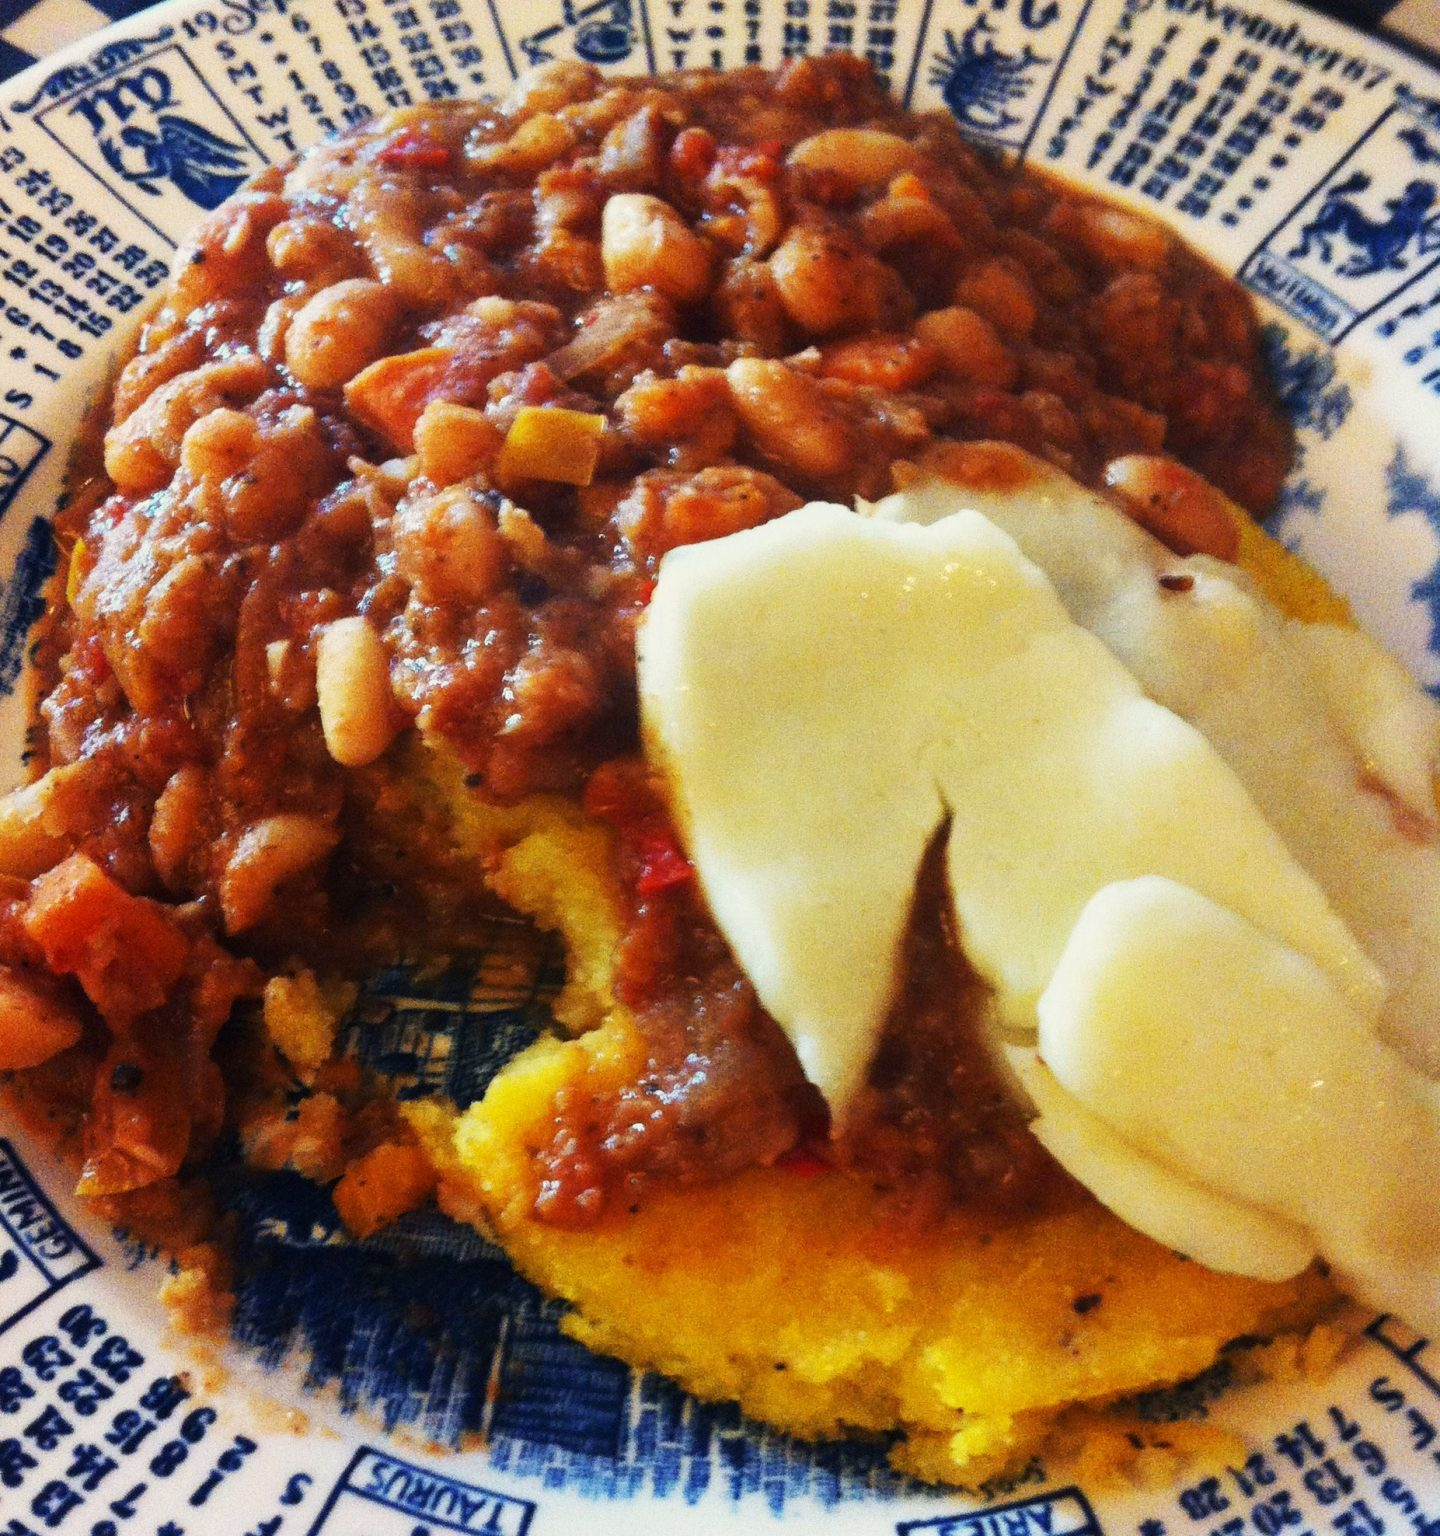 Milgi Beans on Polenta Toast with Halloumi